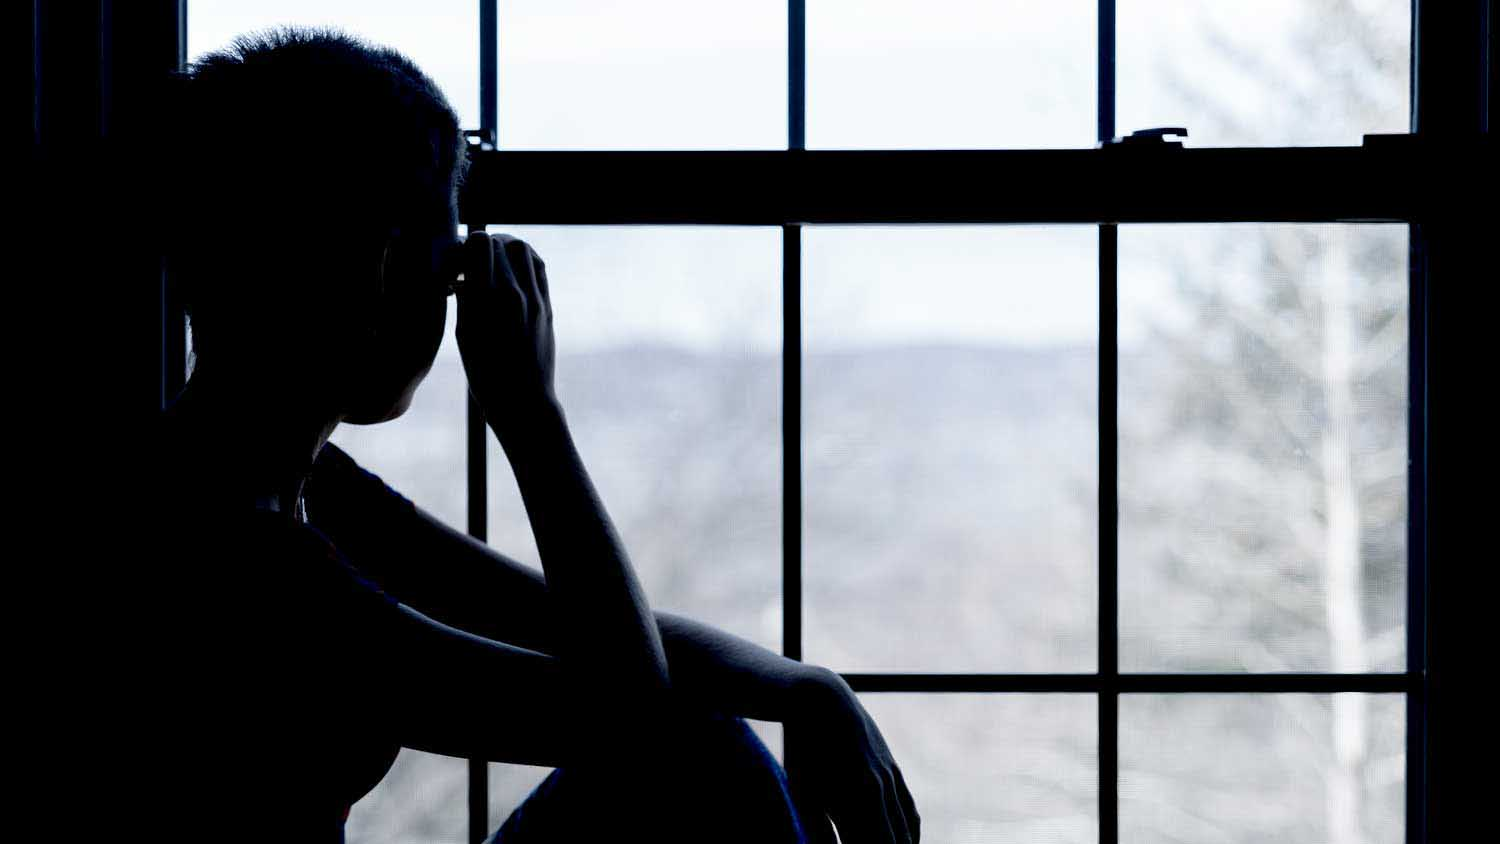 Silhouette of someone looking out of a window